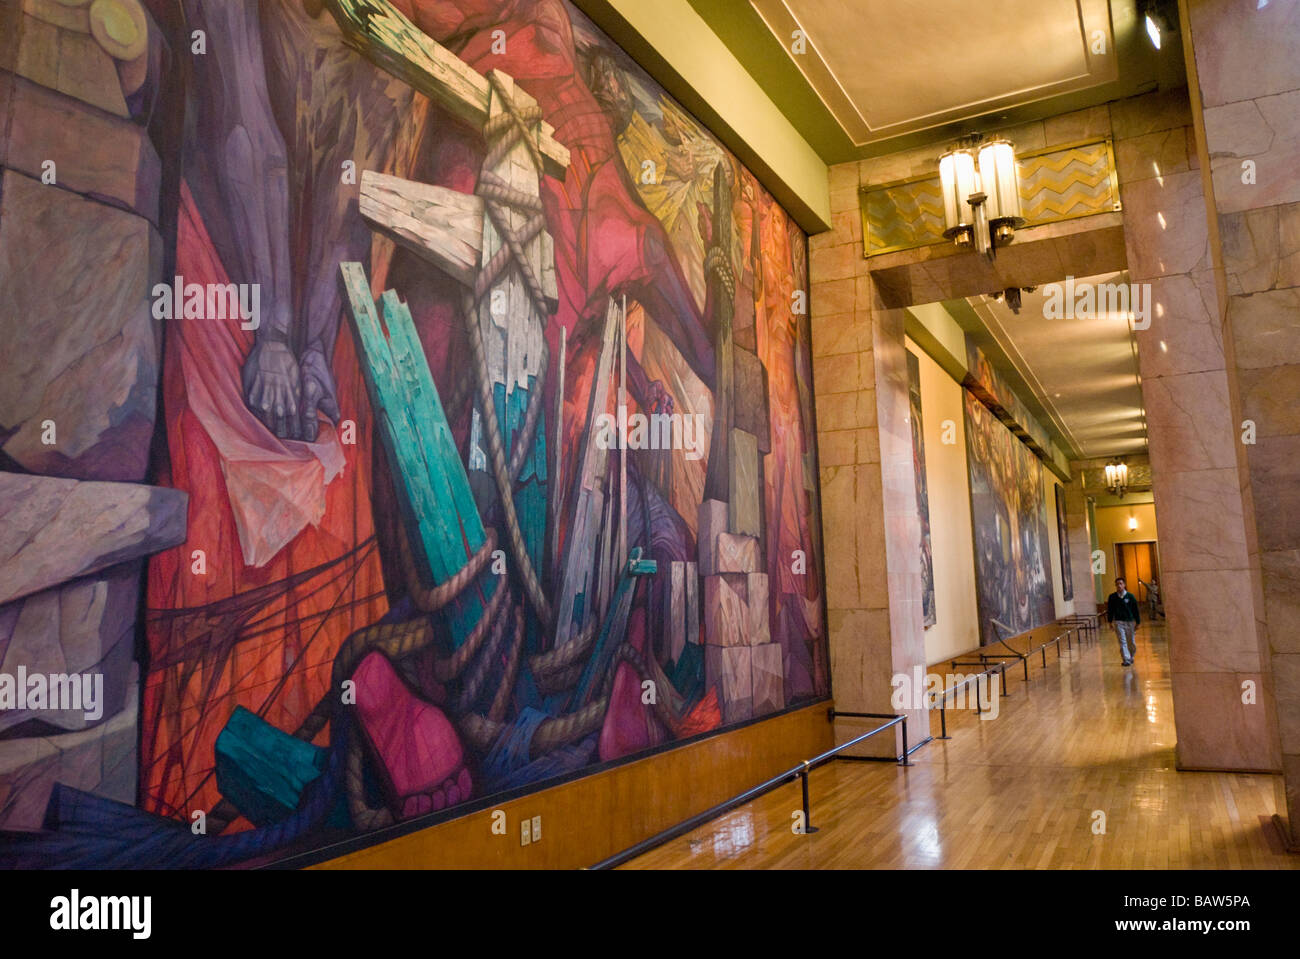 Palacio de bellas artes in mexico city interior murals in for Image city interiors